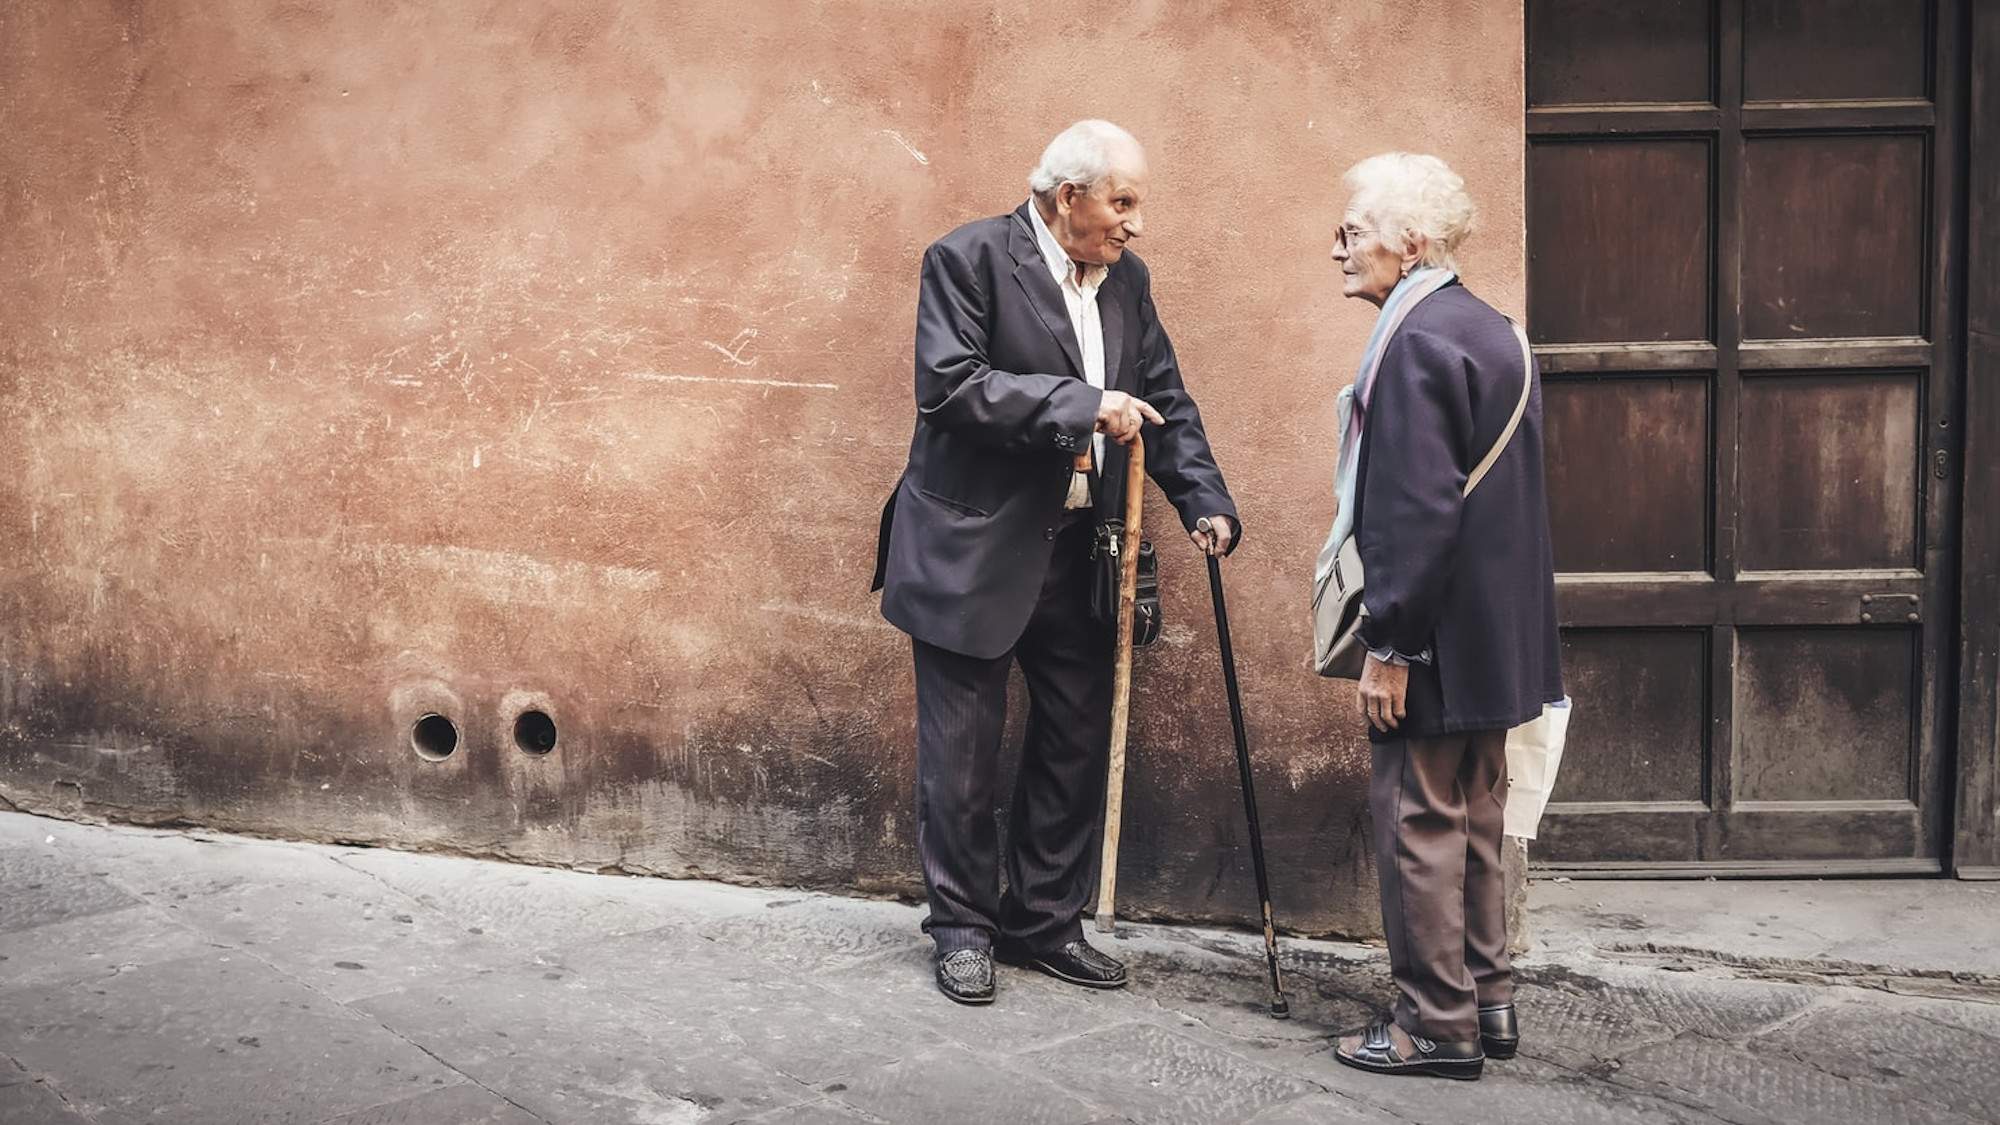 Elderly people on street